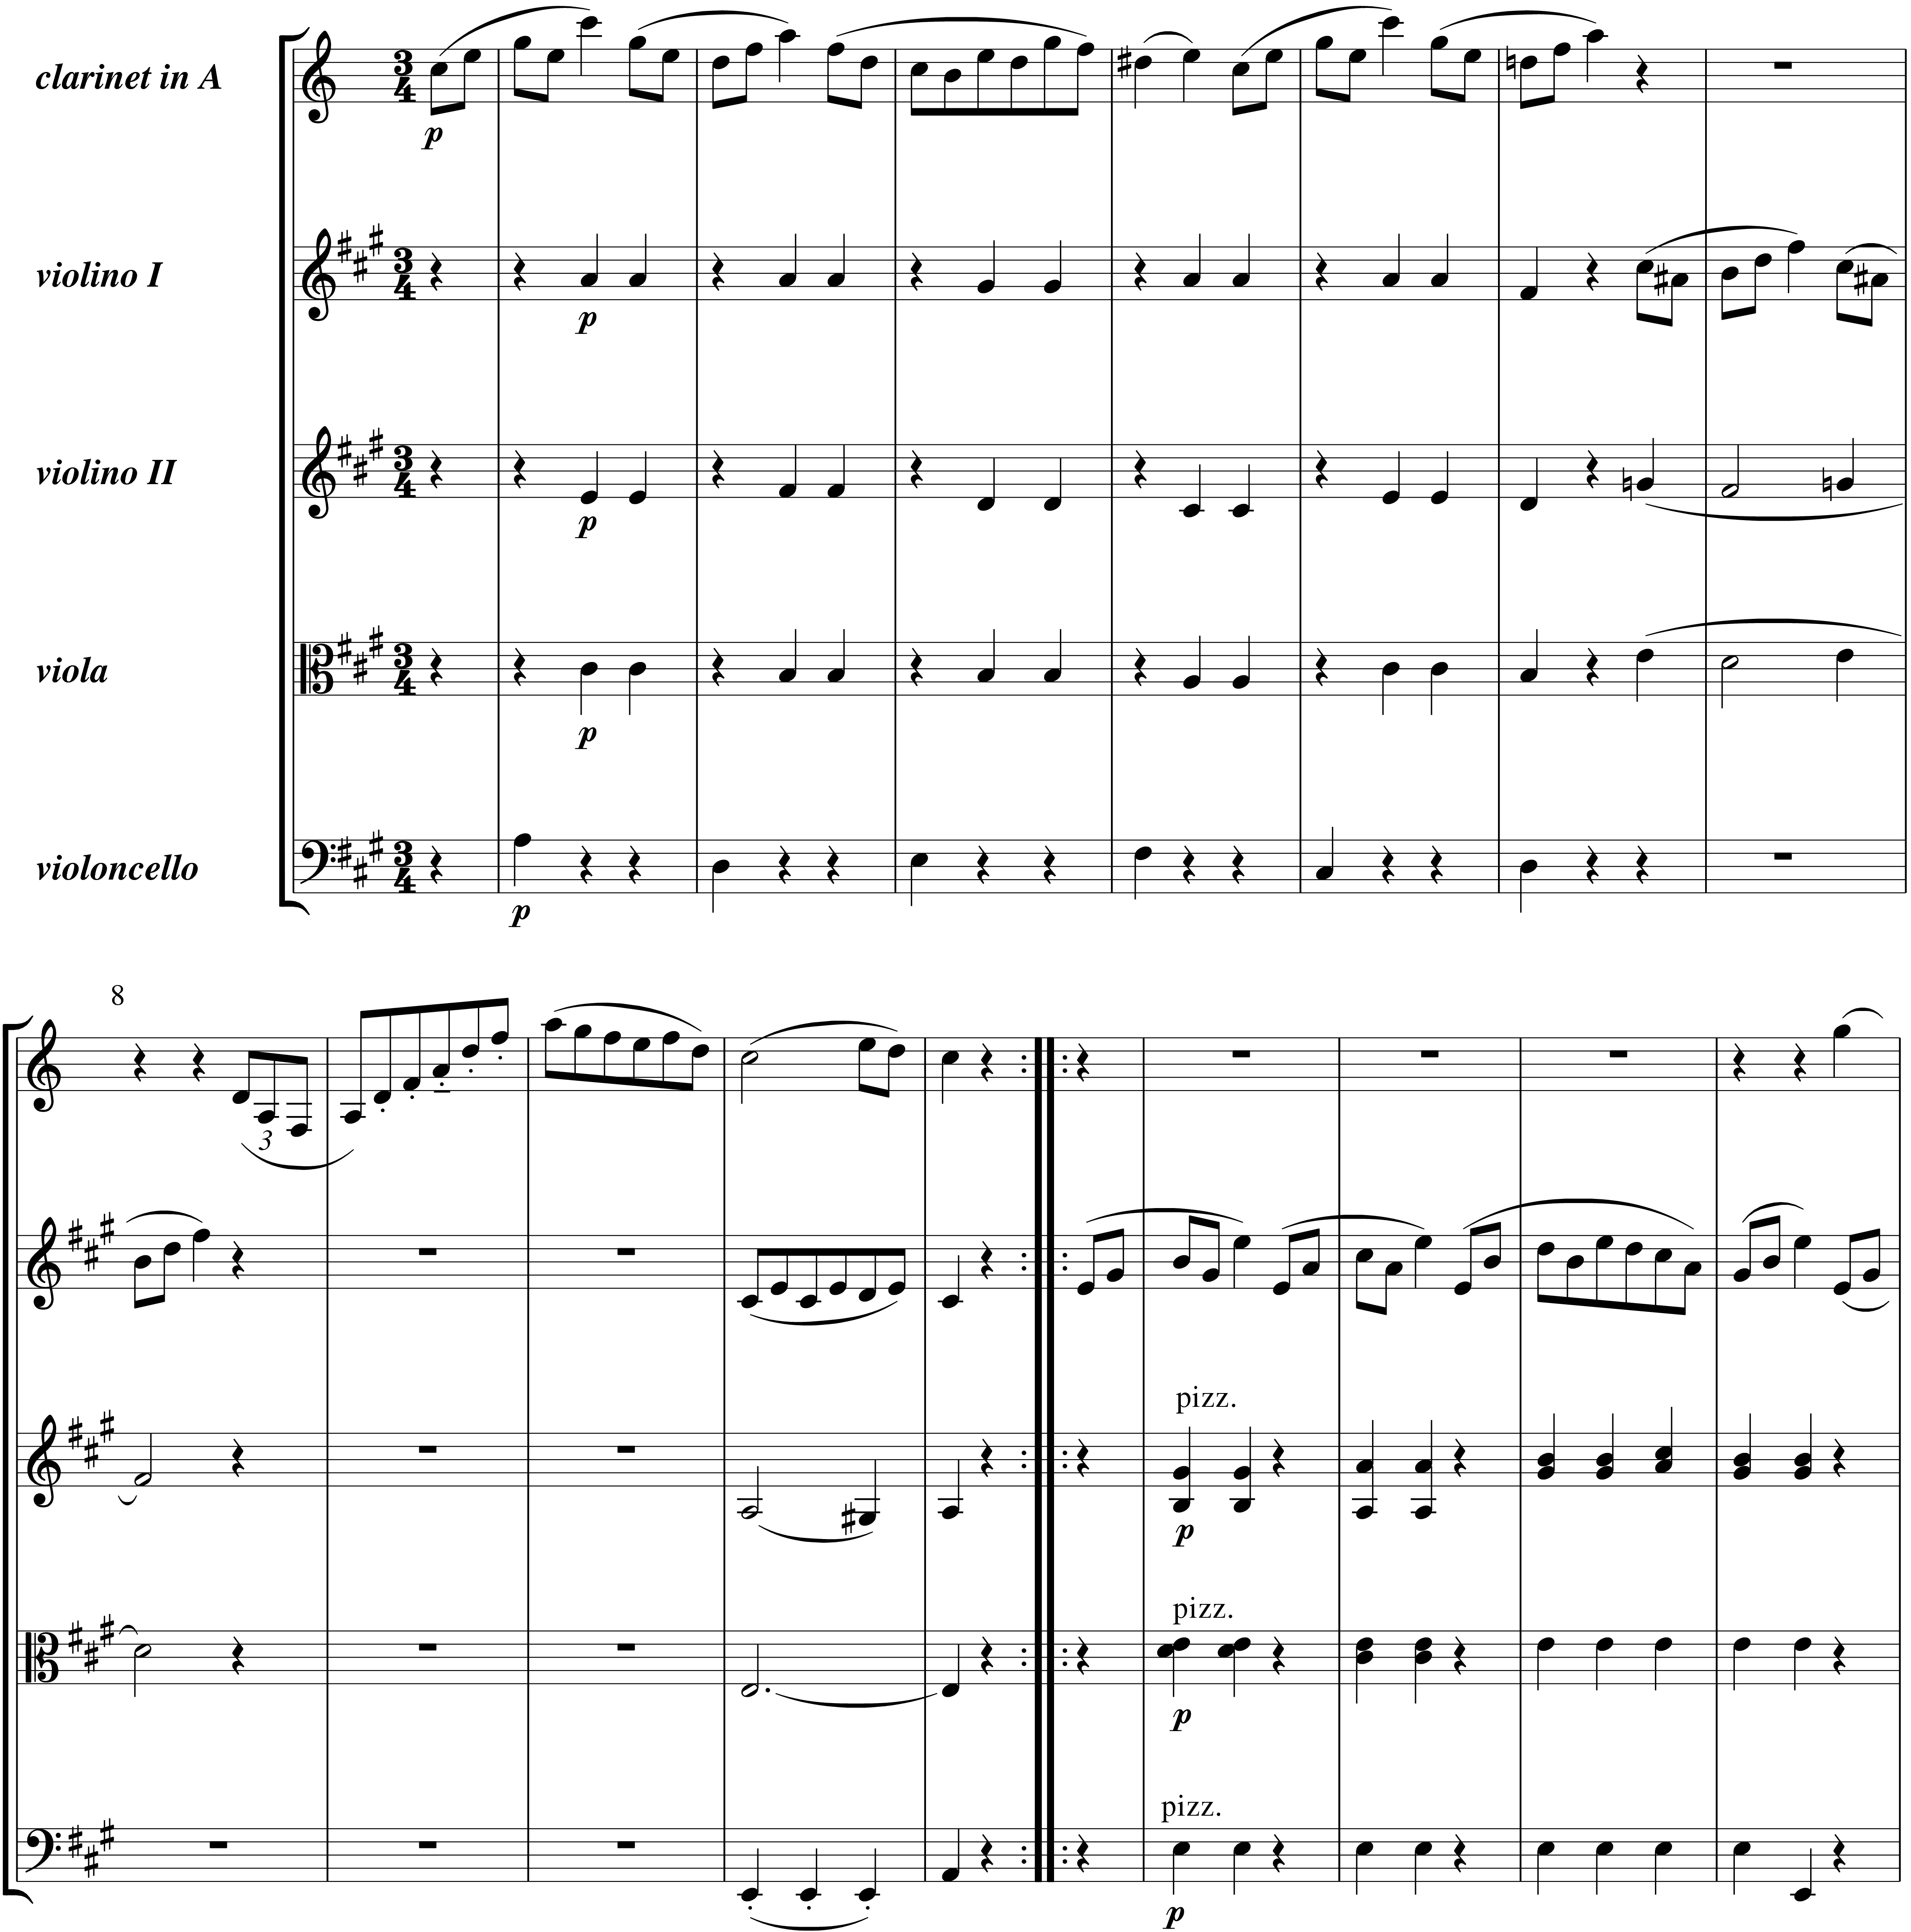 Example Sets of MusicXML Files